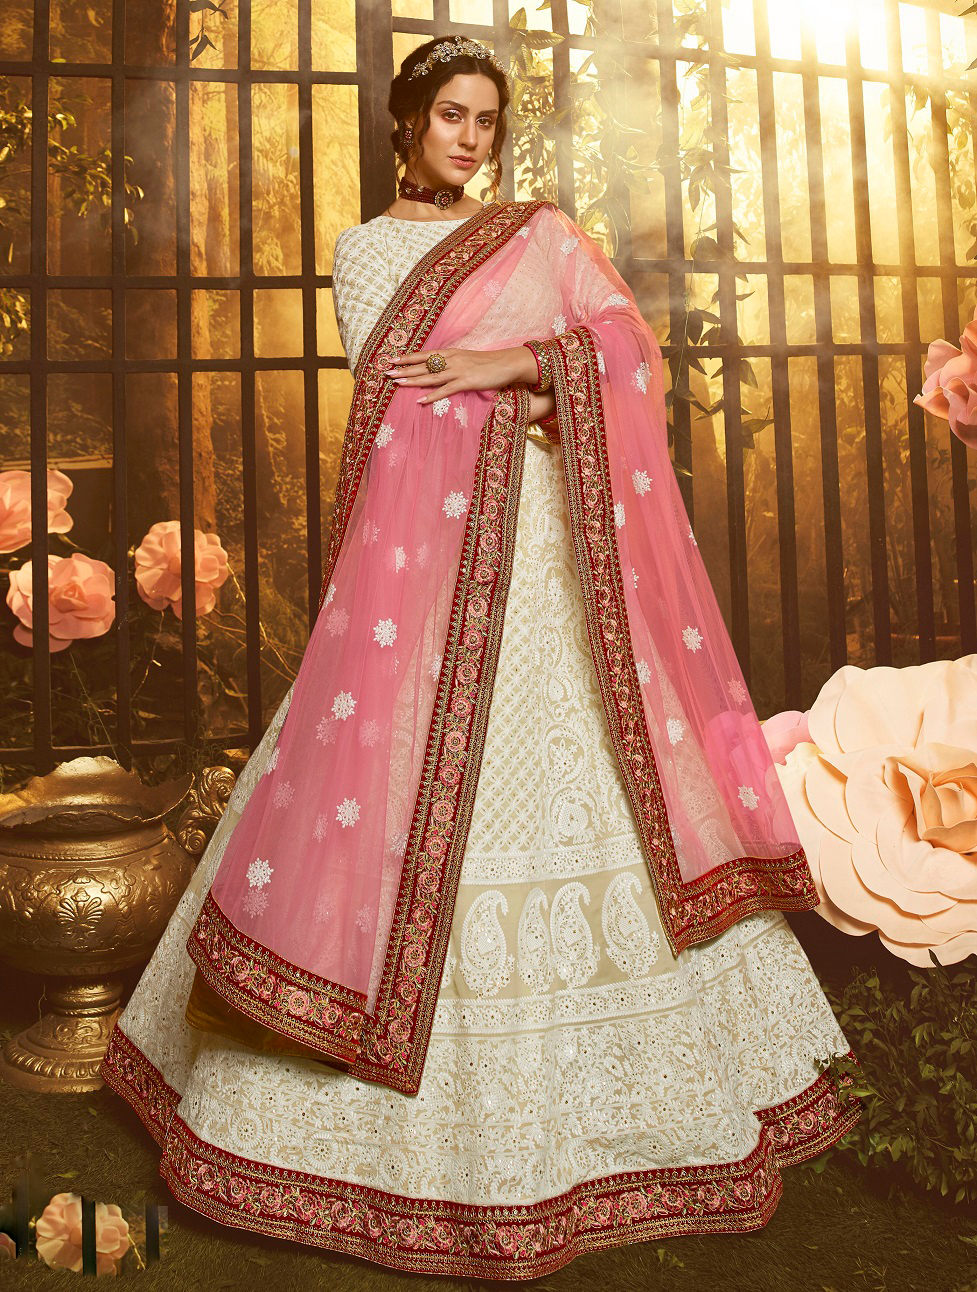 New trendy designer white color gown with pink color soft net dupatta